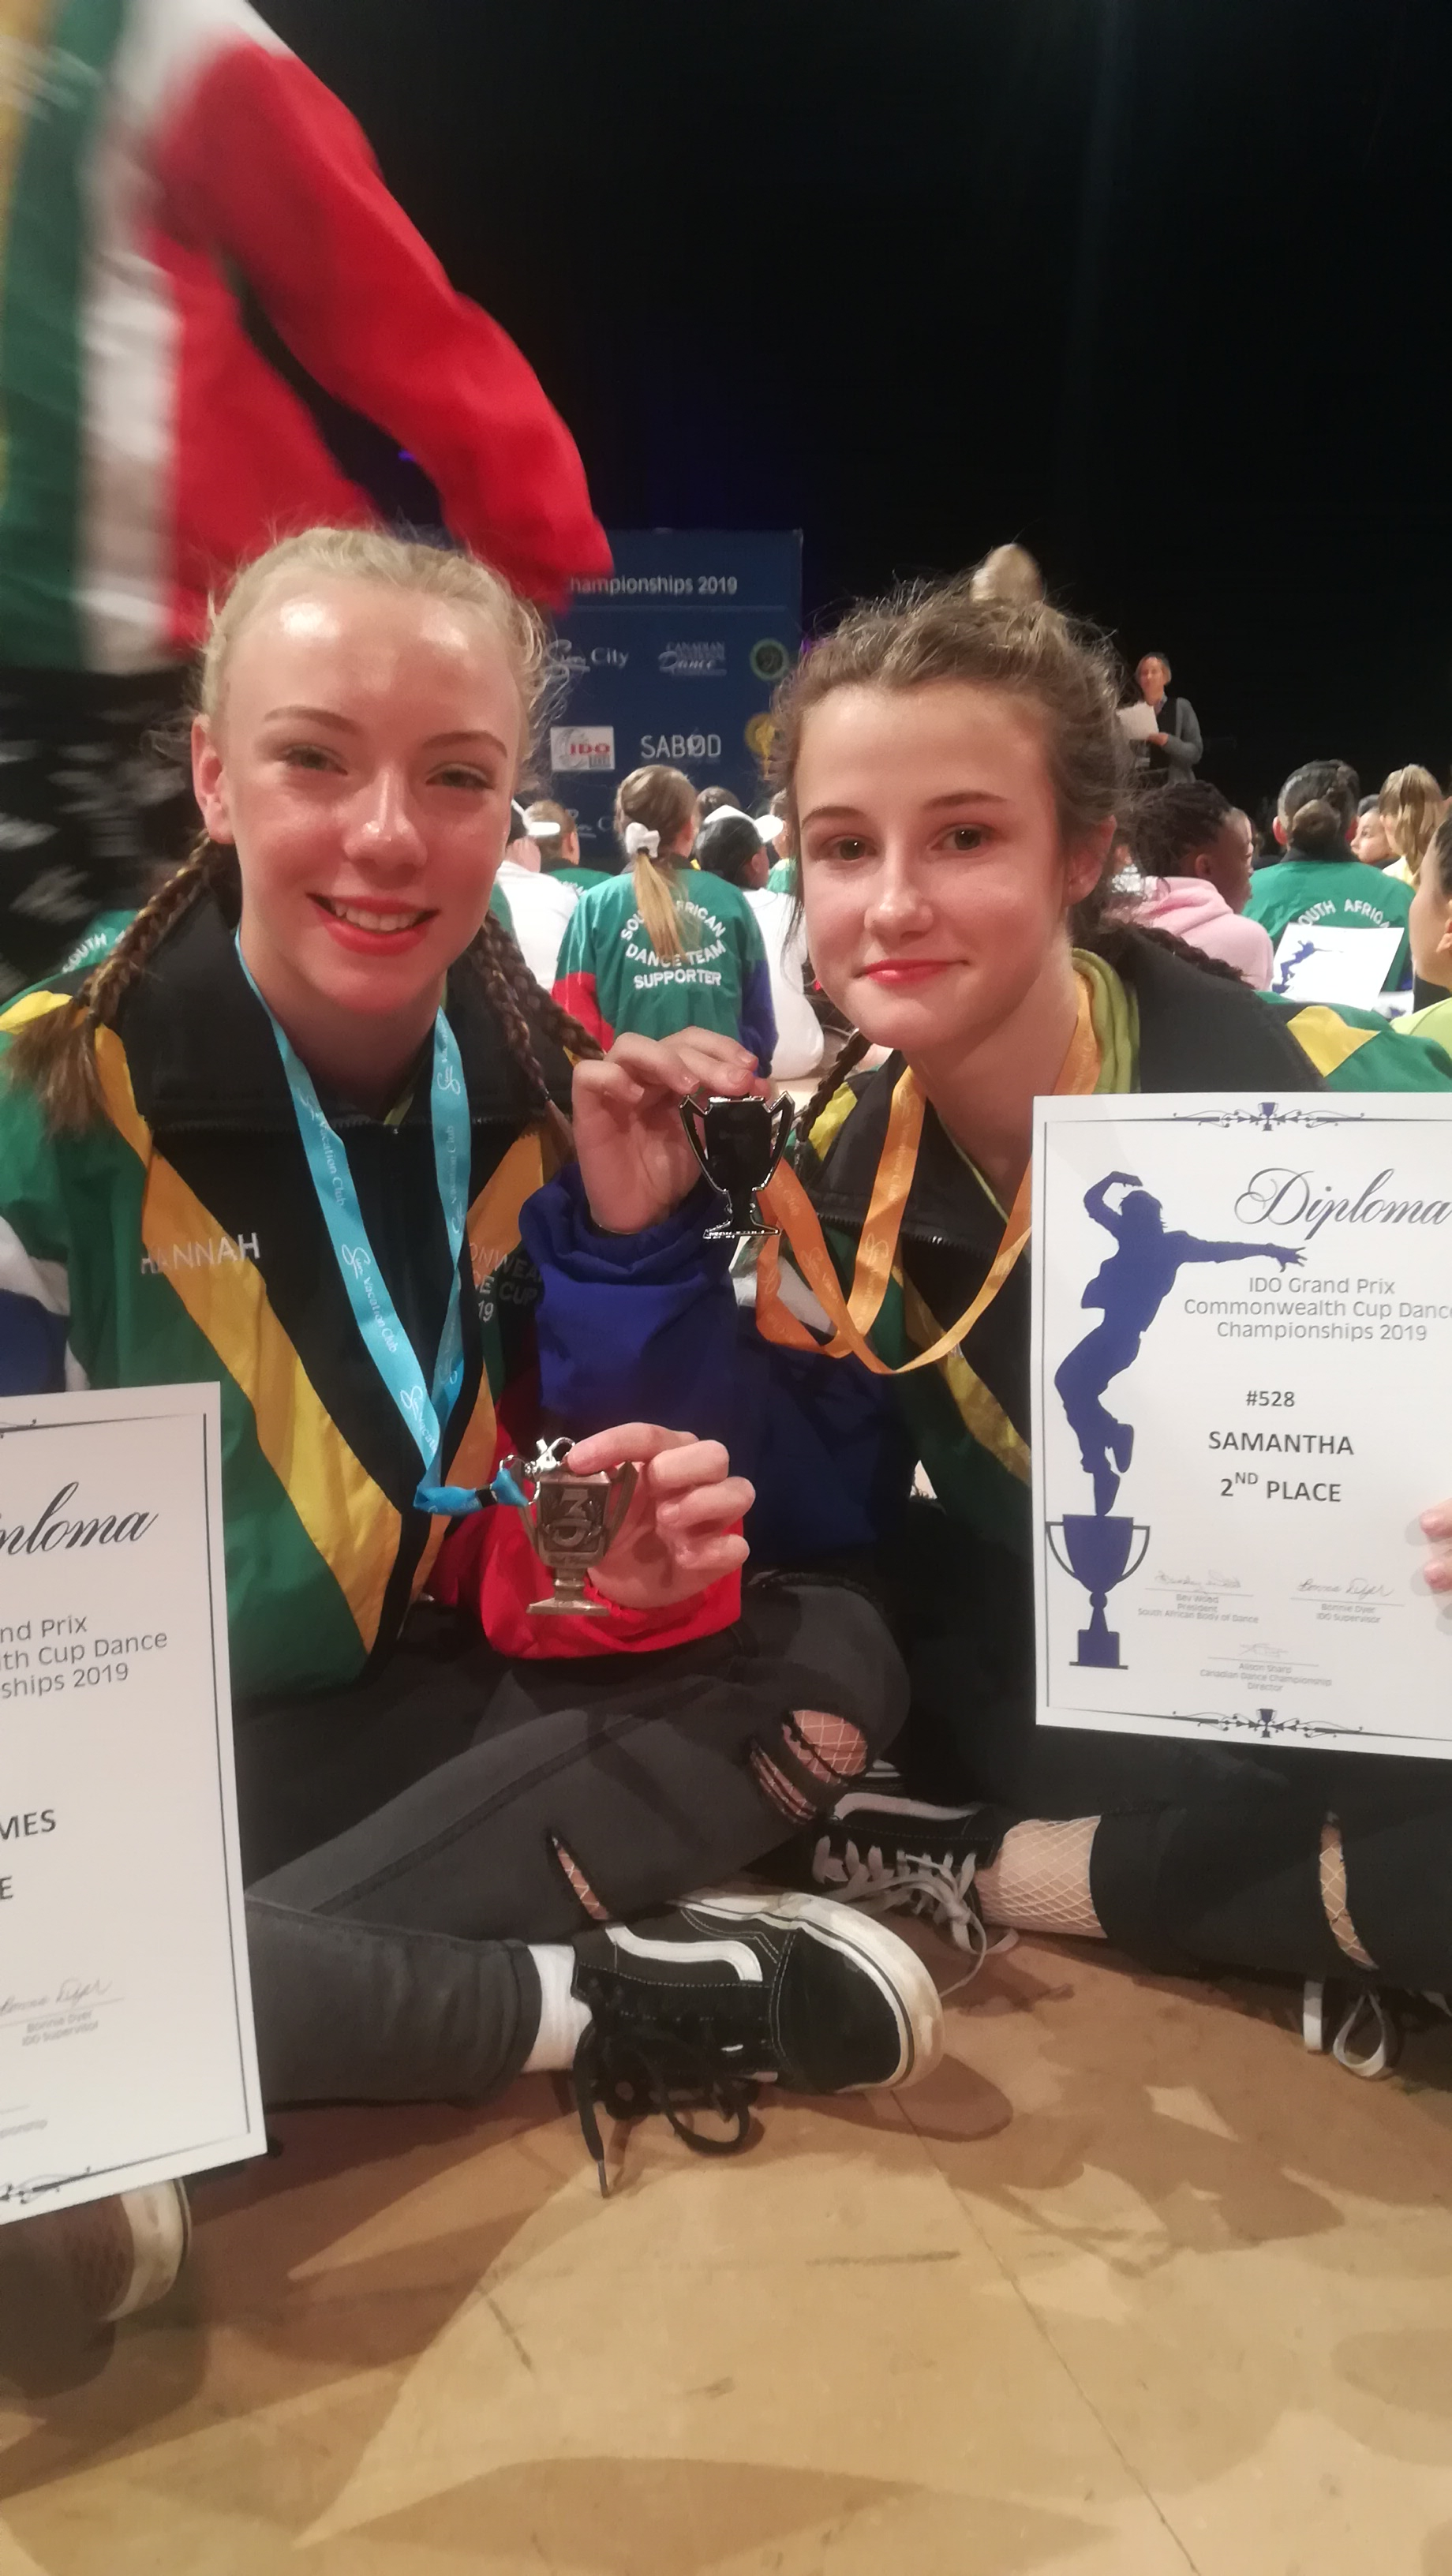 Hannah - 3rd place for her Street Dance Show solo  Sam - 2nd place for her Street Dance Show solo